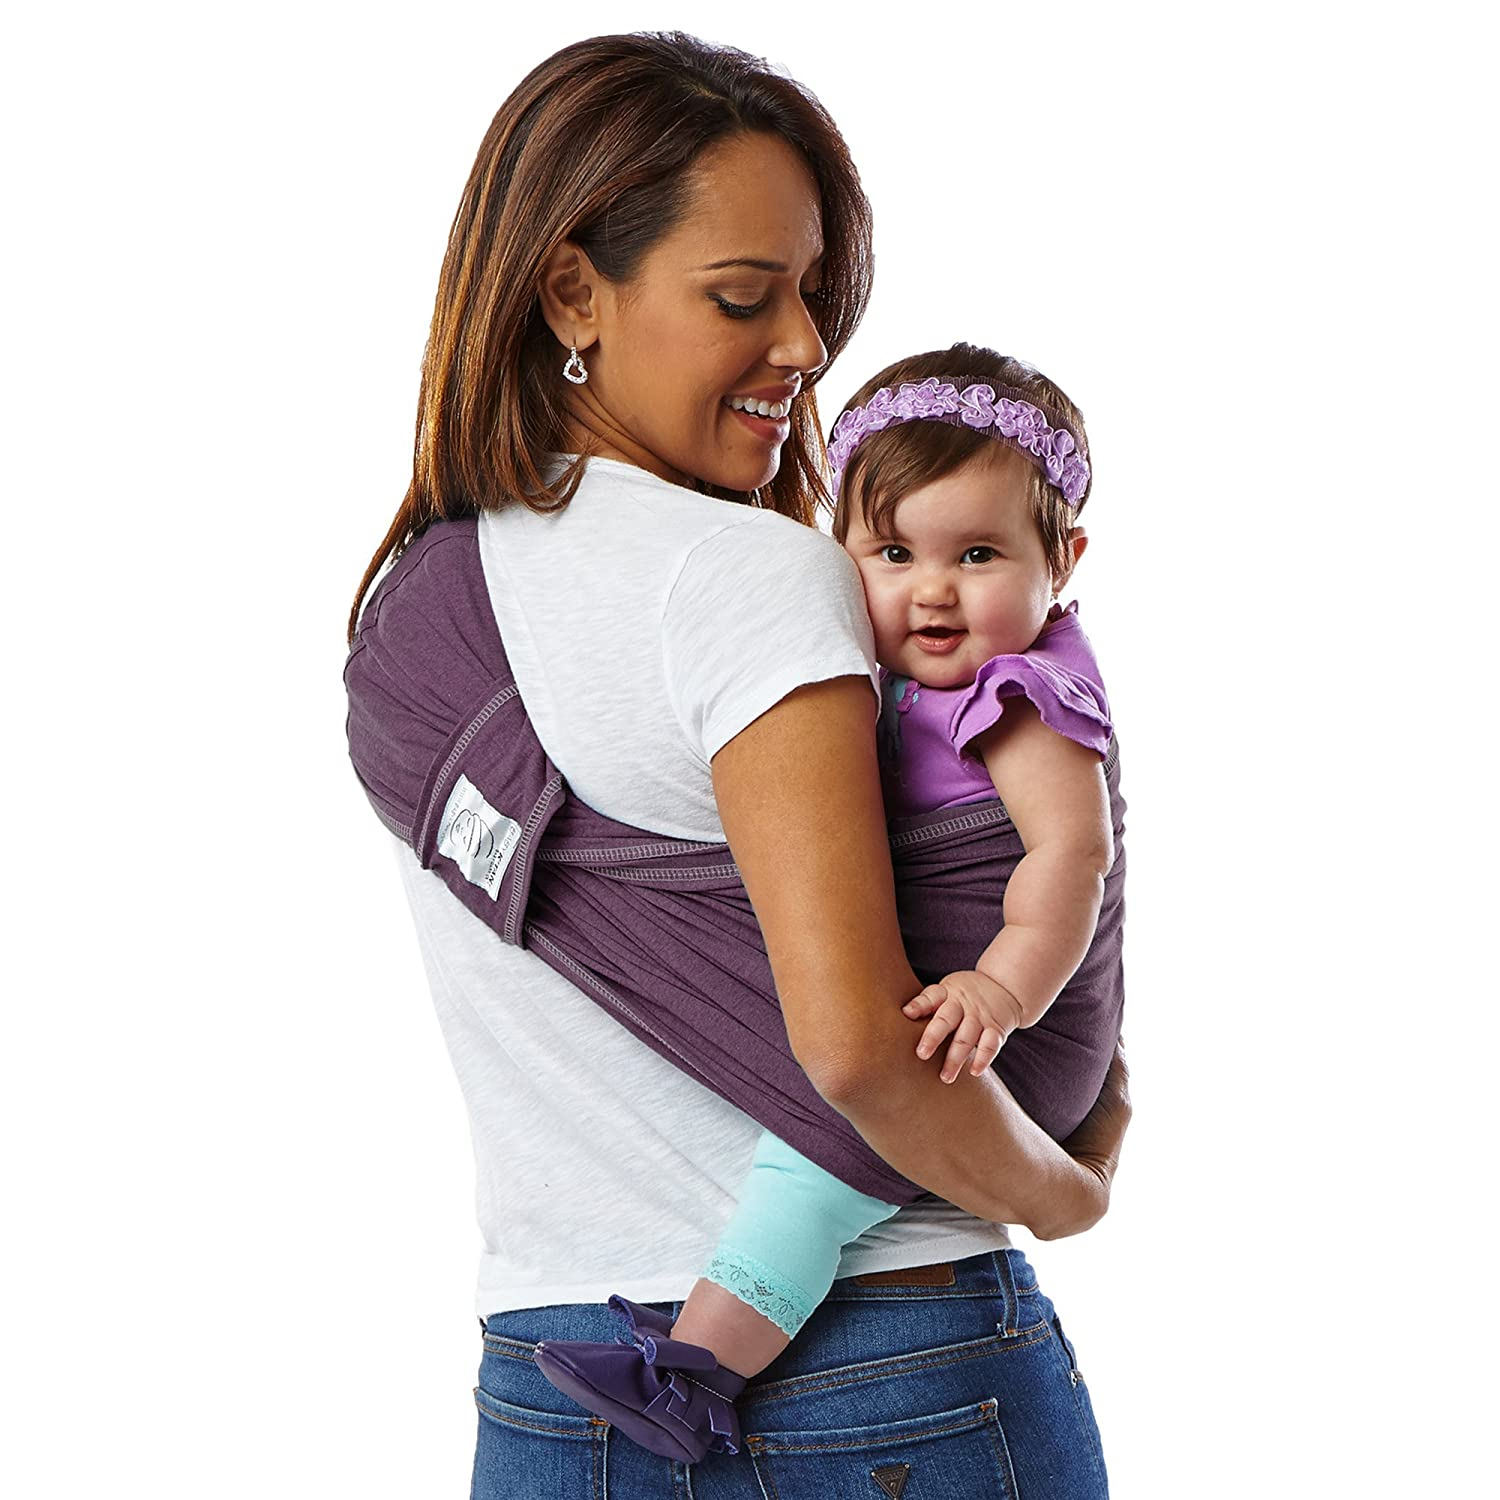 Baby Ktan Print Baby Wrap Carrier W dress up to 0 Infant and Child Sling-Navy Stripe 2X-Small Best for Babywearing. Newborn up to 35 lbs